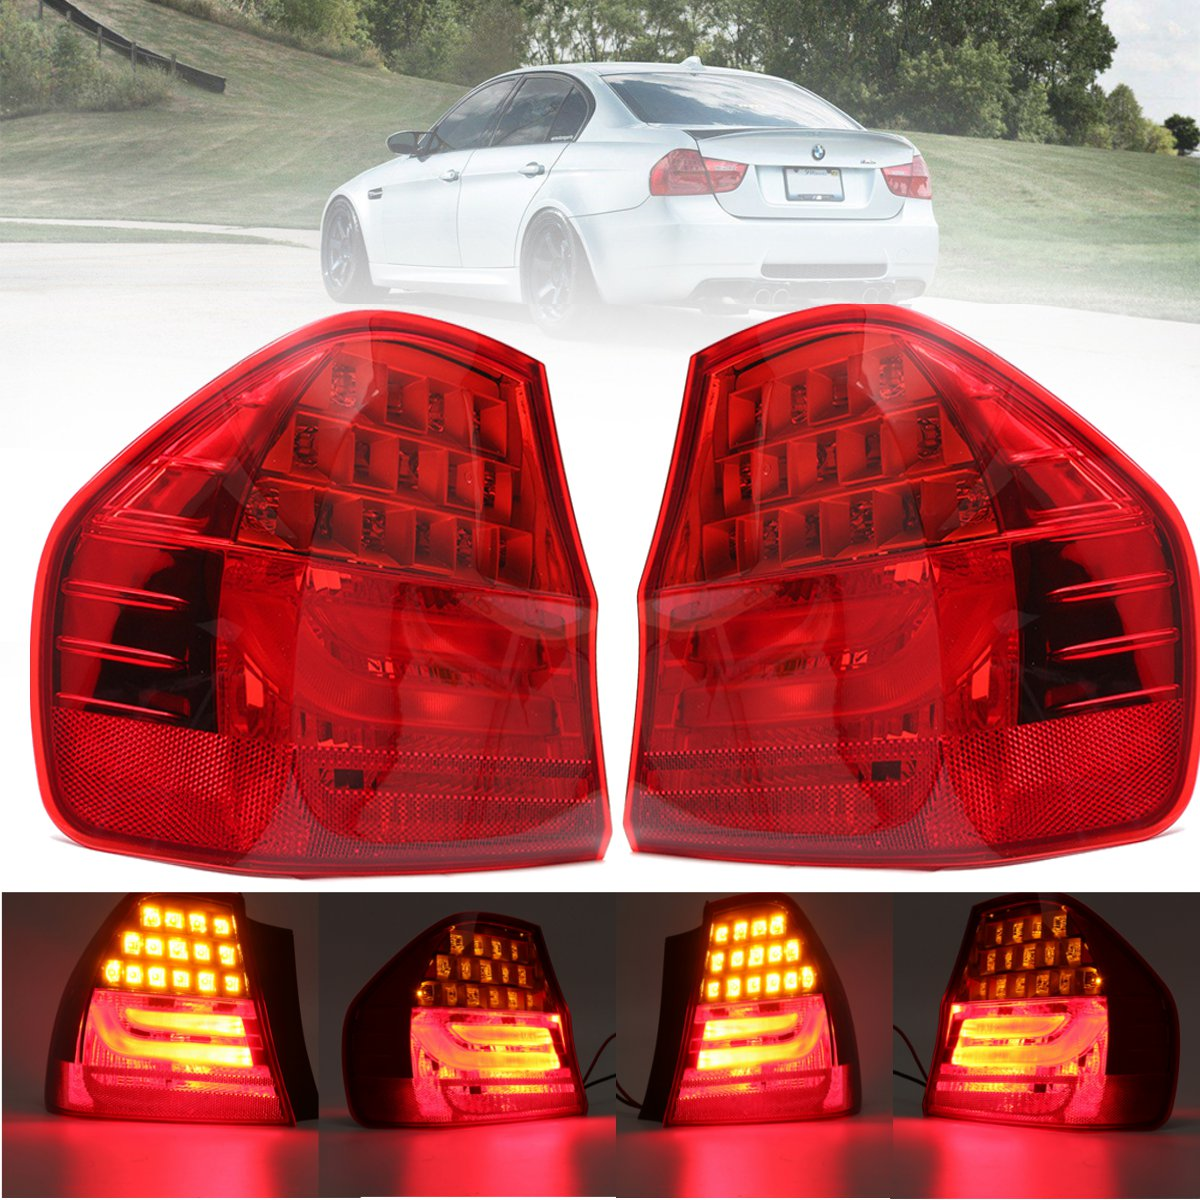 1Pcs Car Rear Tail Lamp Light Led Light Left Right Side For BMW 3 SERIES E90